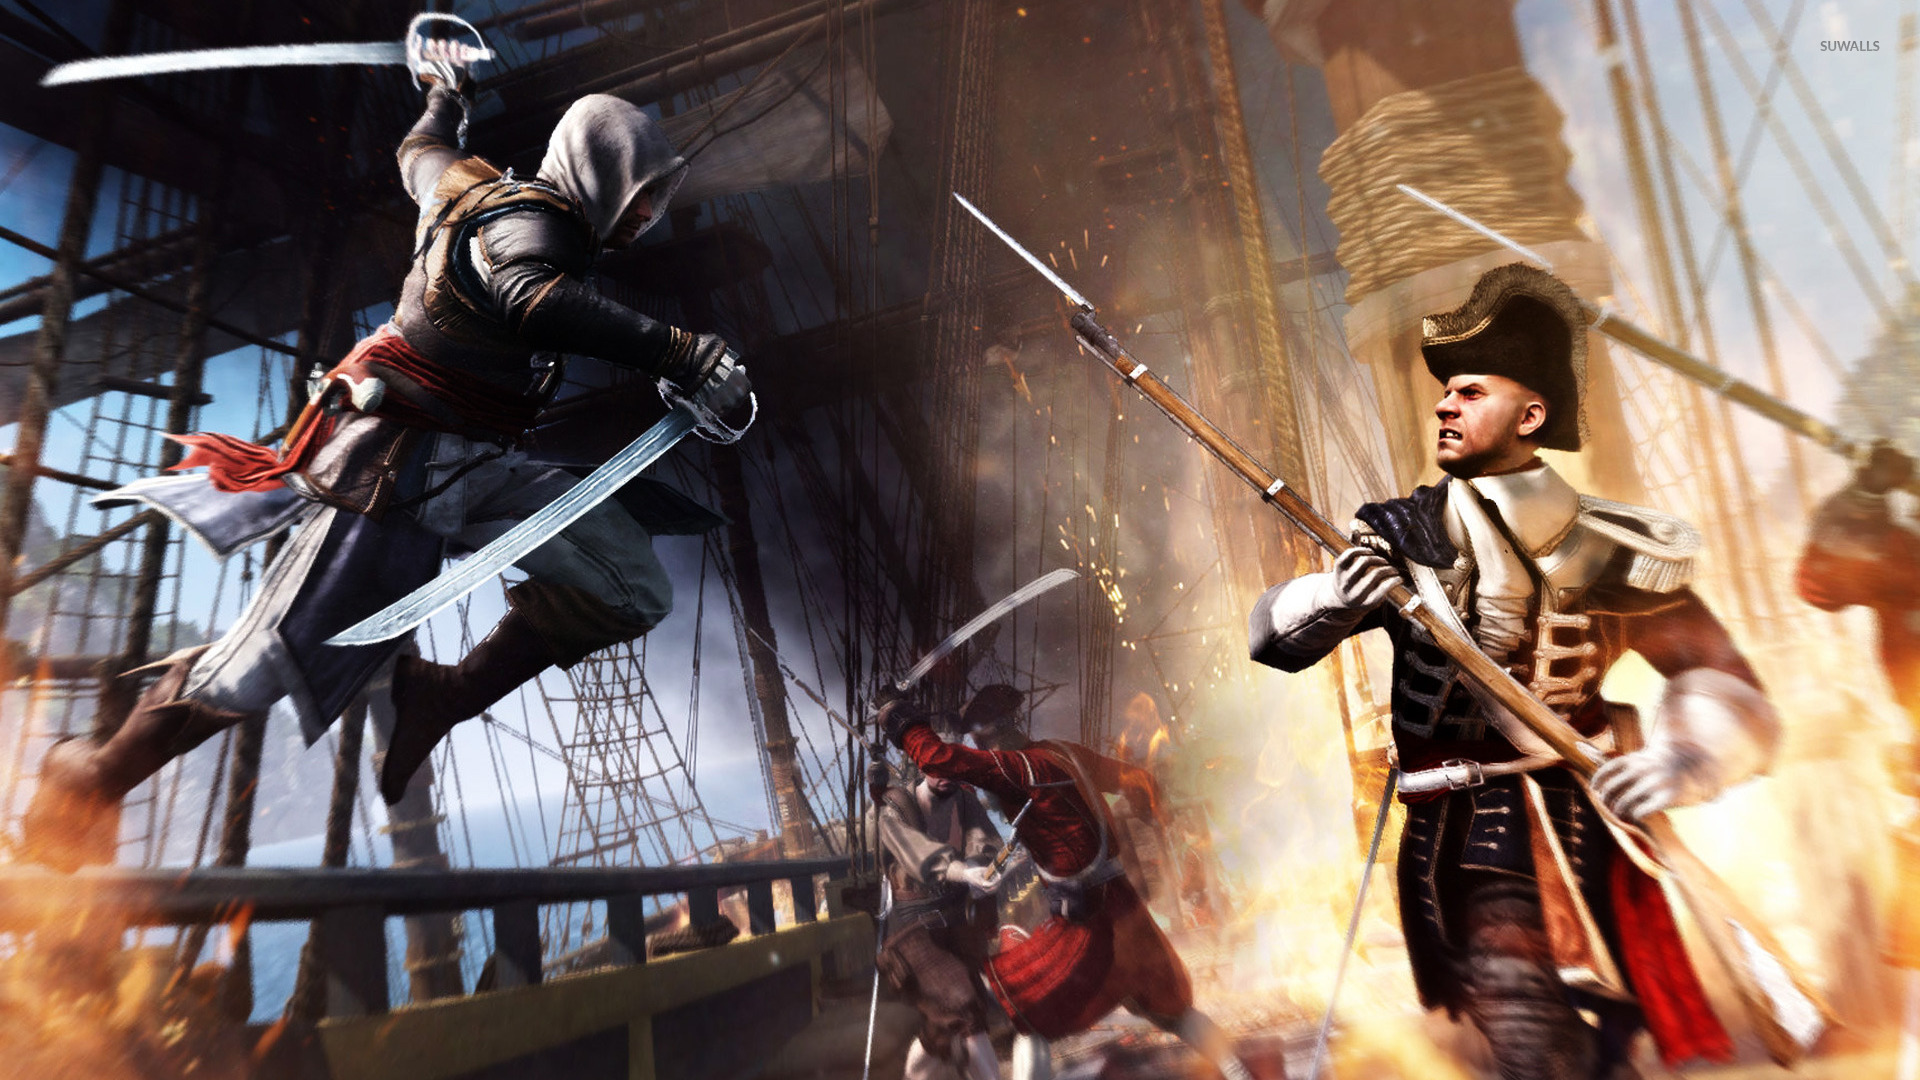 Download The Assassin S Creed Iv Black Flag Wallpapers: Assassin's Creed IV: Black Flag [15] Wallpaper